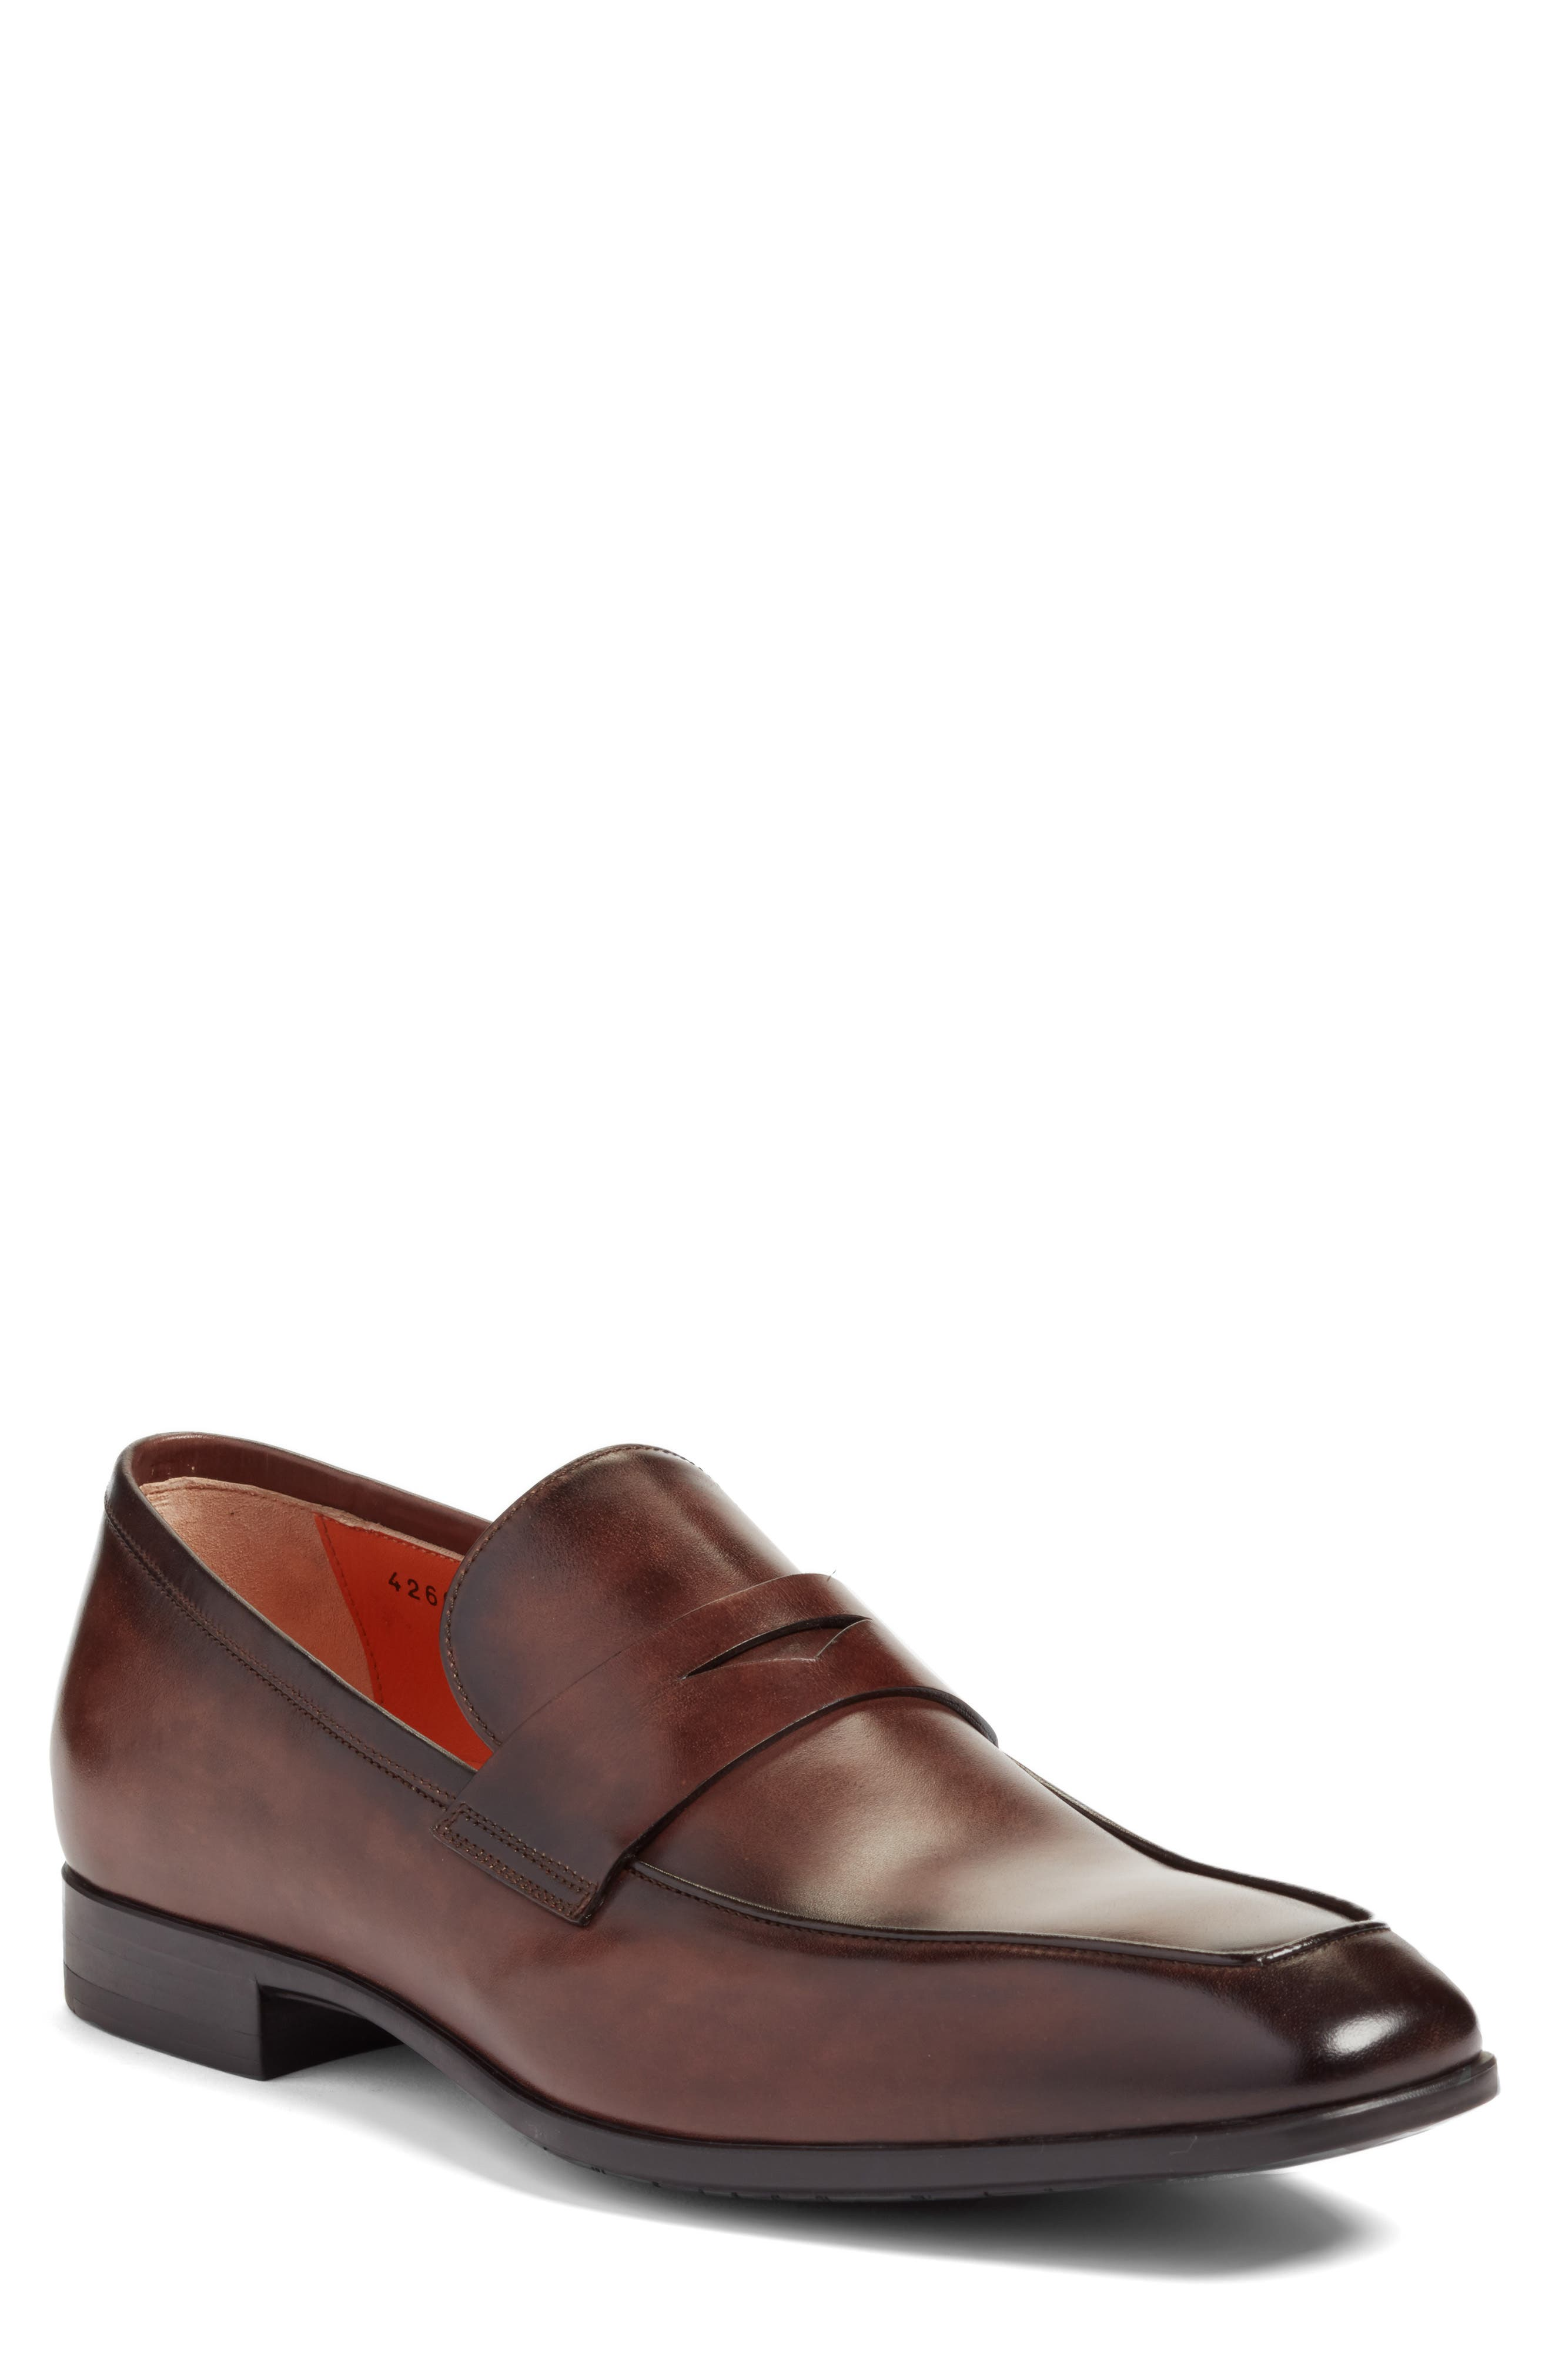 Fisk Square Toe Penny Loafer,                             Main thumbnail 1, color,                             BROWN LEATHER